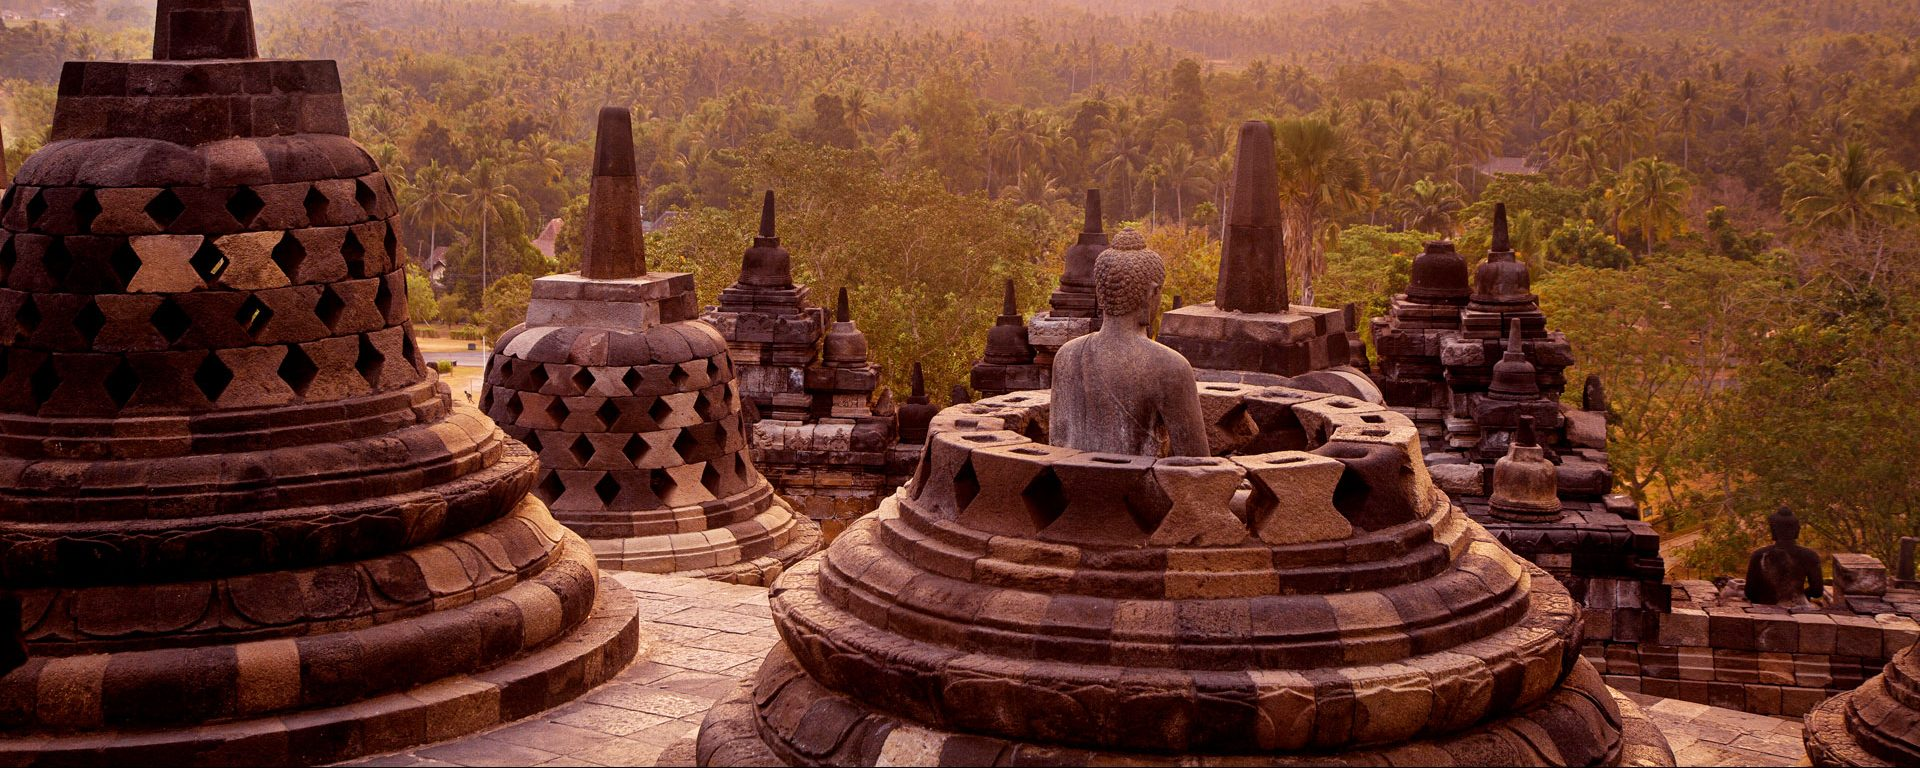 Statue and stupas at Borobudur Temple on Java, Indonesia